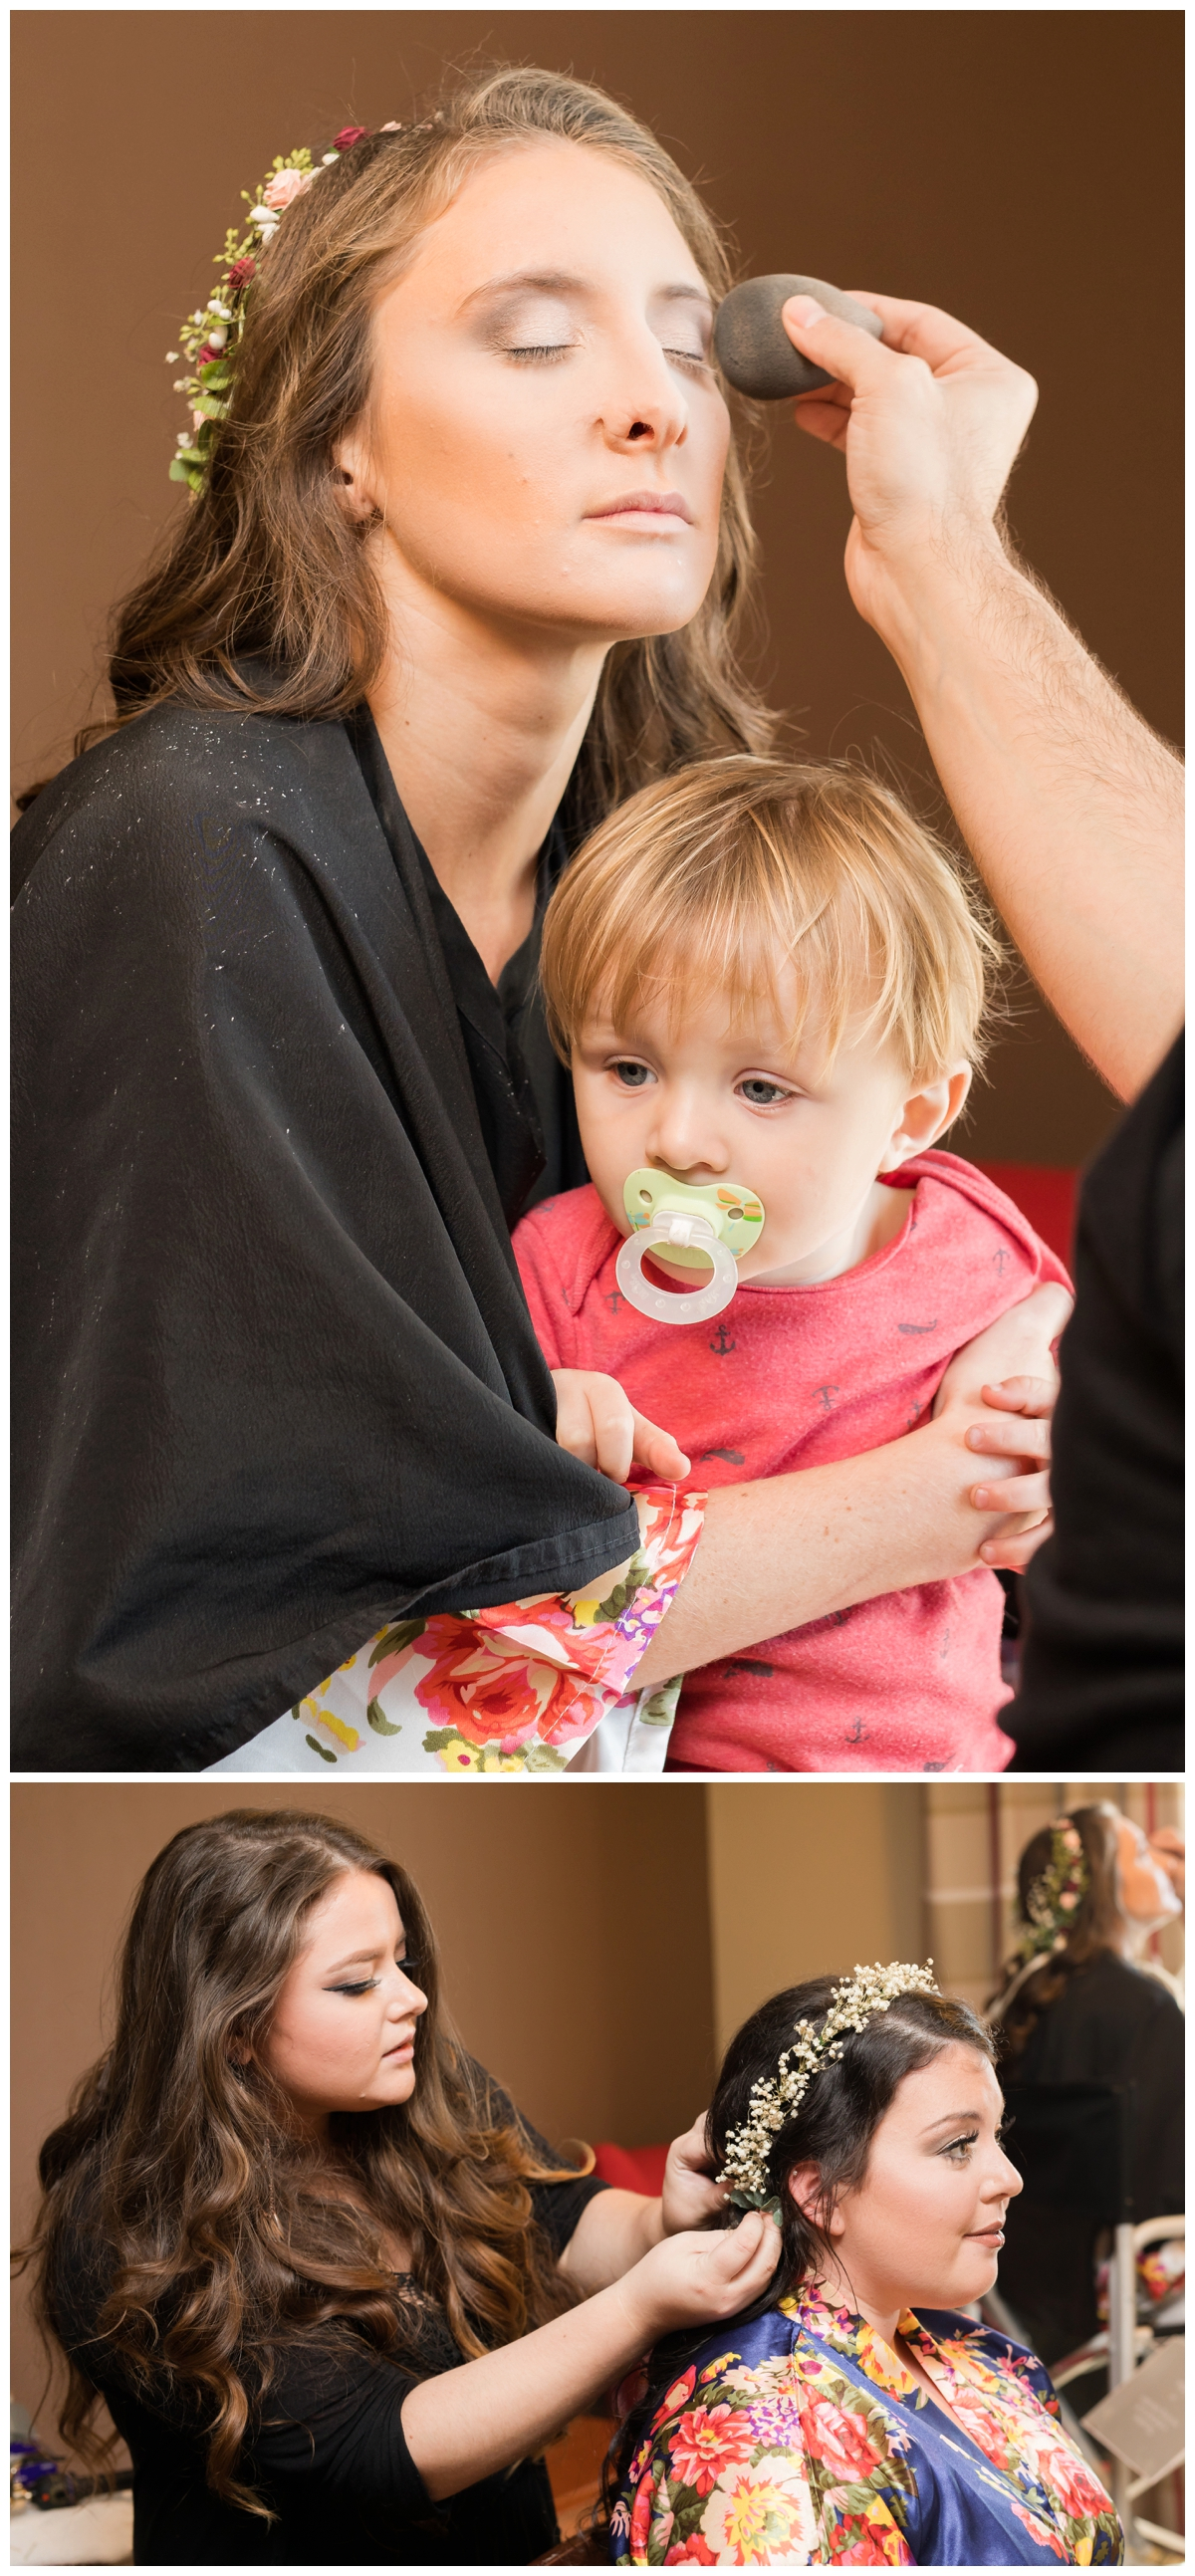 Bride having her make-up done for her wedding with her son on her lap